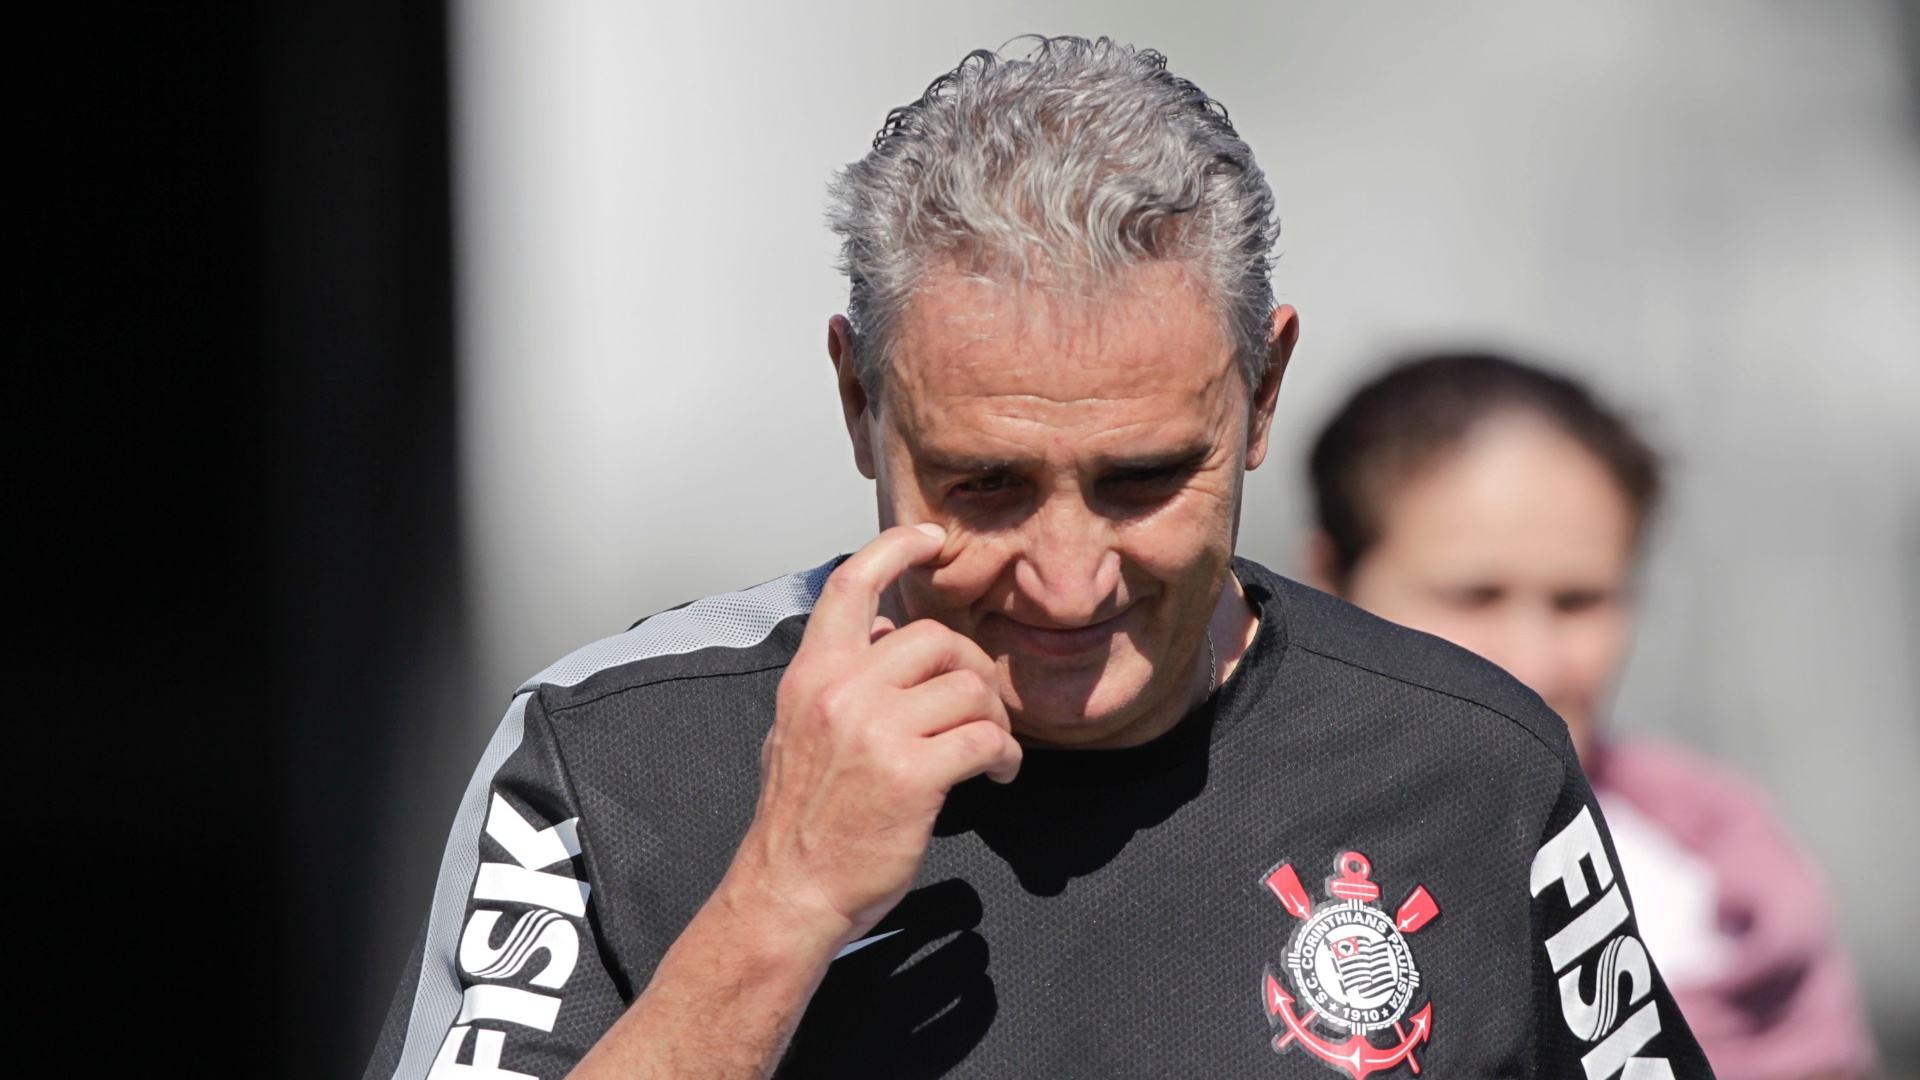 Tite caminha aps a pelada entre o time da comisso tcnica do Corinthians e o time dos operrios do Itaquero